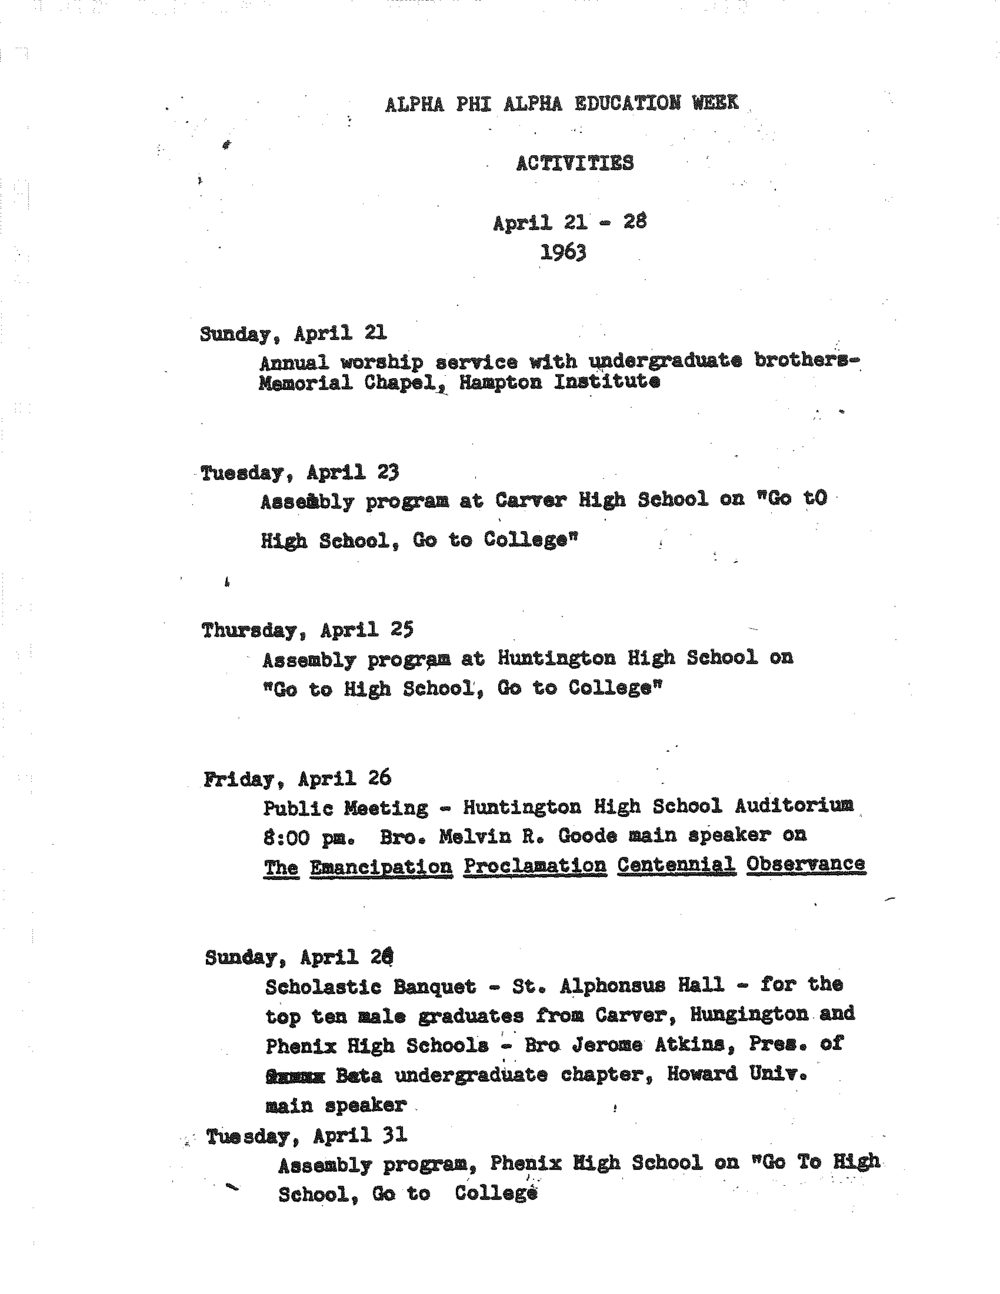 Zeta Lambda 1963 - Education Week-1.png